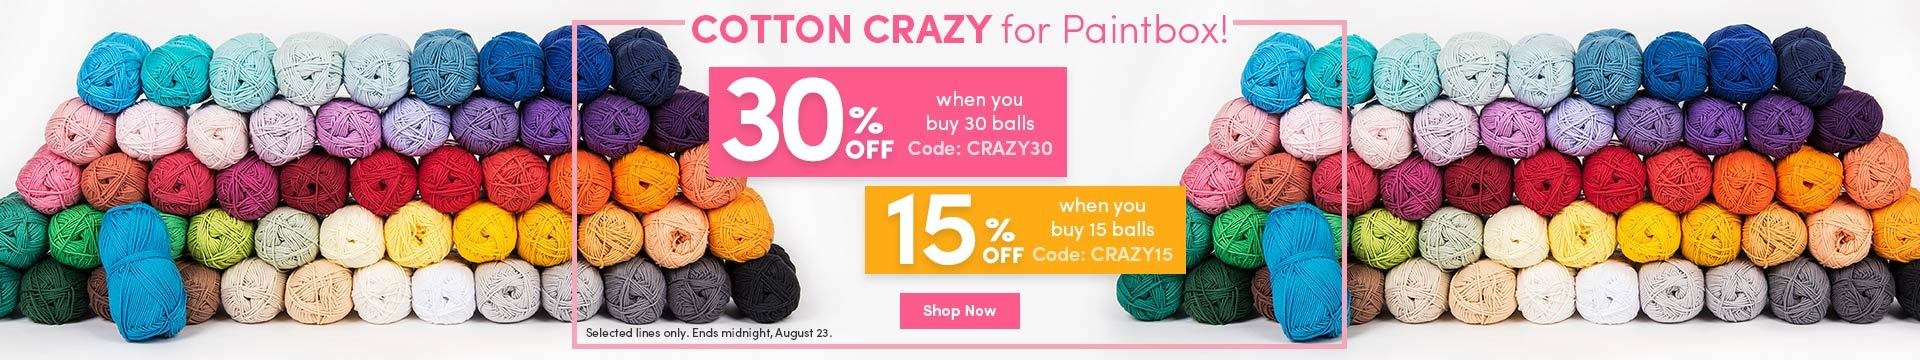 LC Marketing - Paintbox Cotton 30% off 30 balls Aug 2017